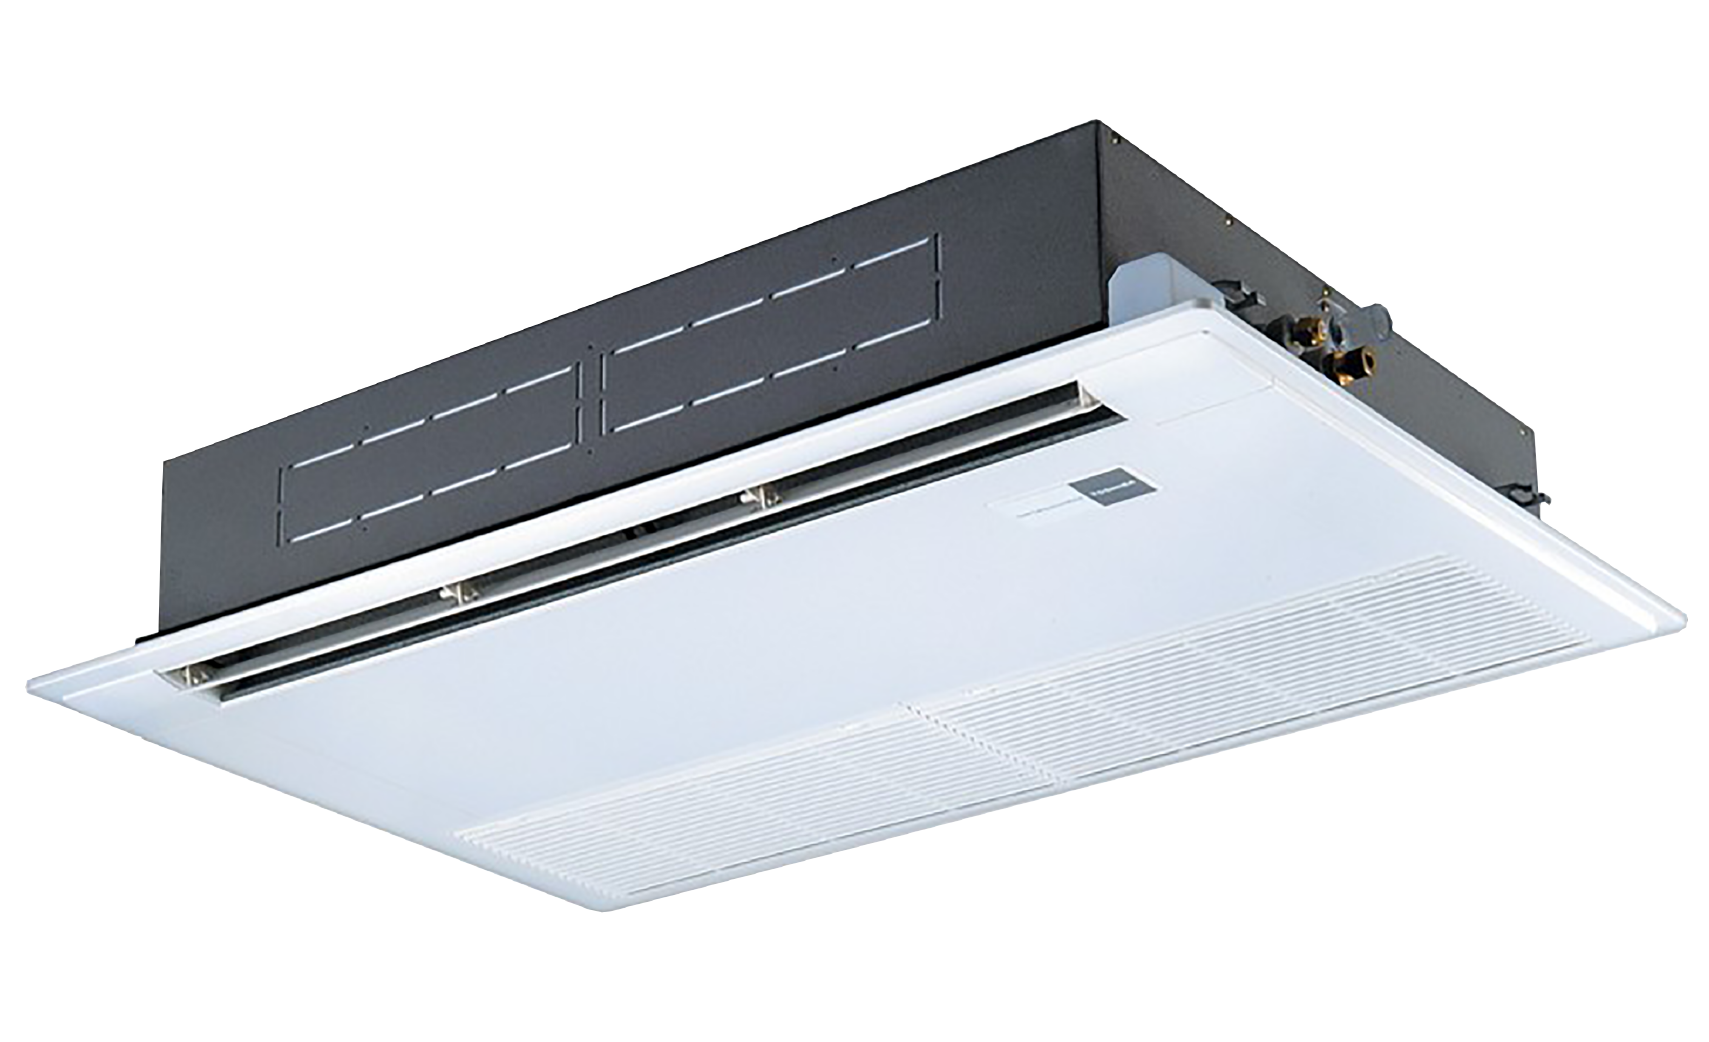 https://www.toshiba-aircon.co.uk/wp-content/uploads/2013/12/VRF-Indoor-Unit-1-Way-Cassette-01.png